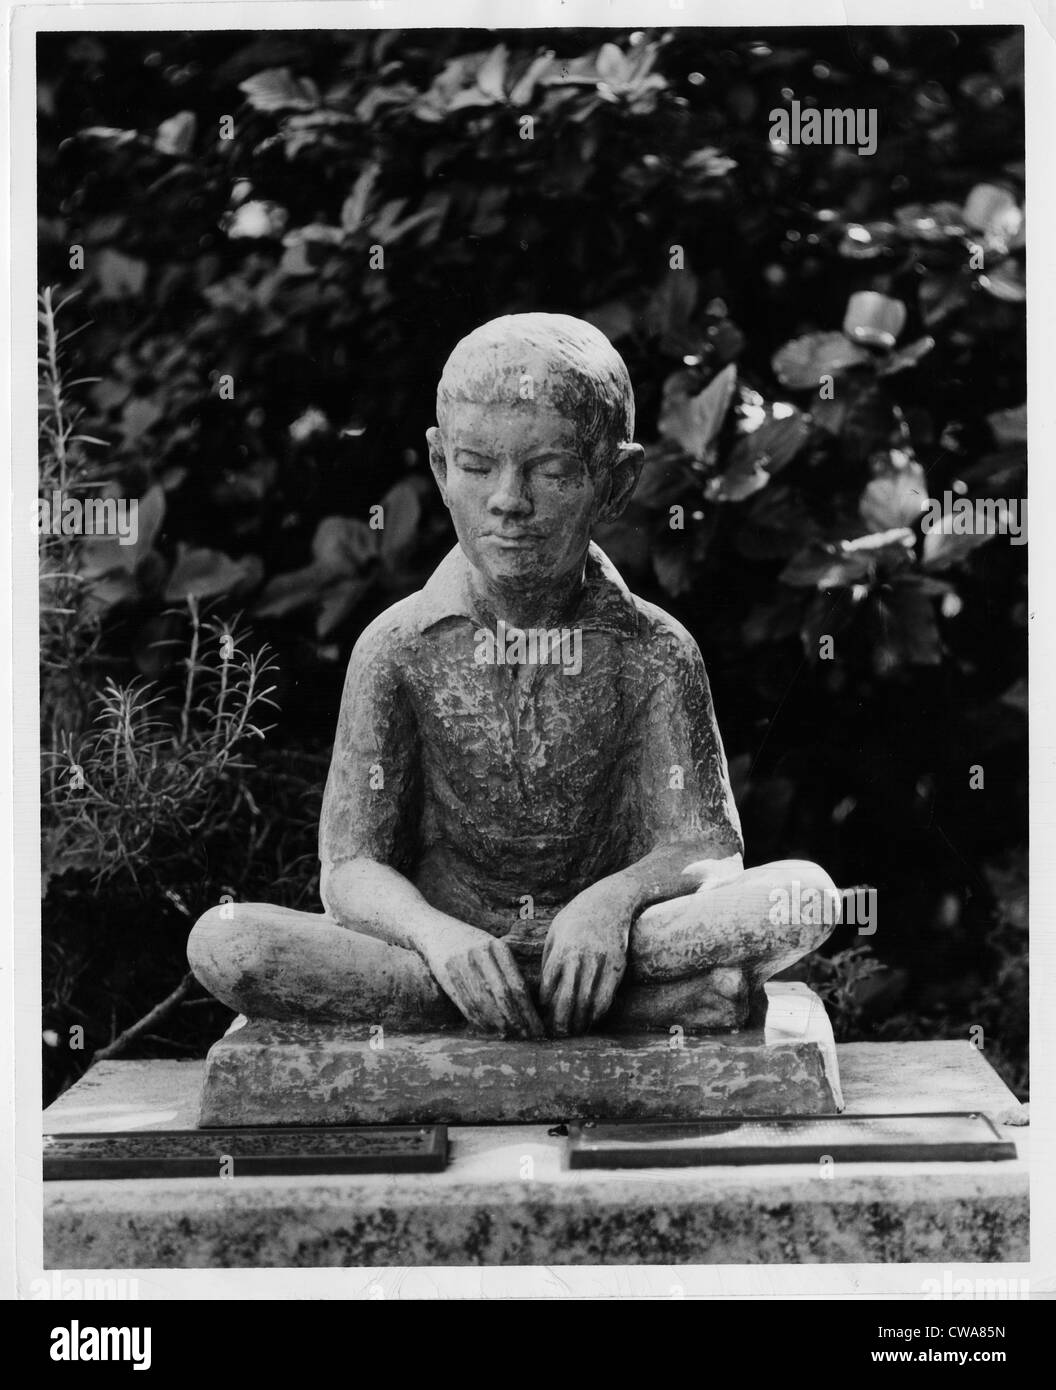 Statue of Louis Braille in Bermuda's Garden of the Blind, 1964. Courtesy: CSU Archives/Everett Collection - Stock Image